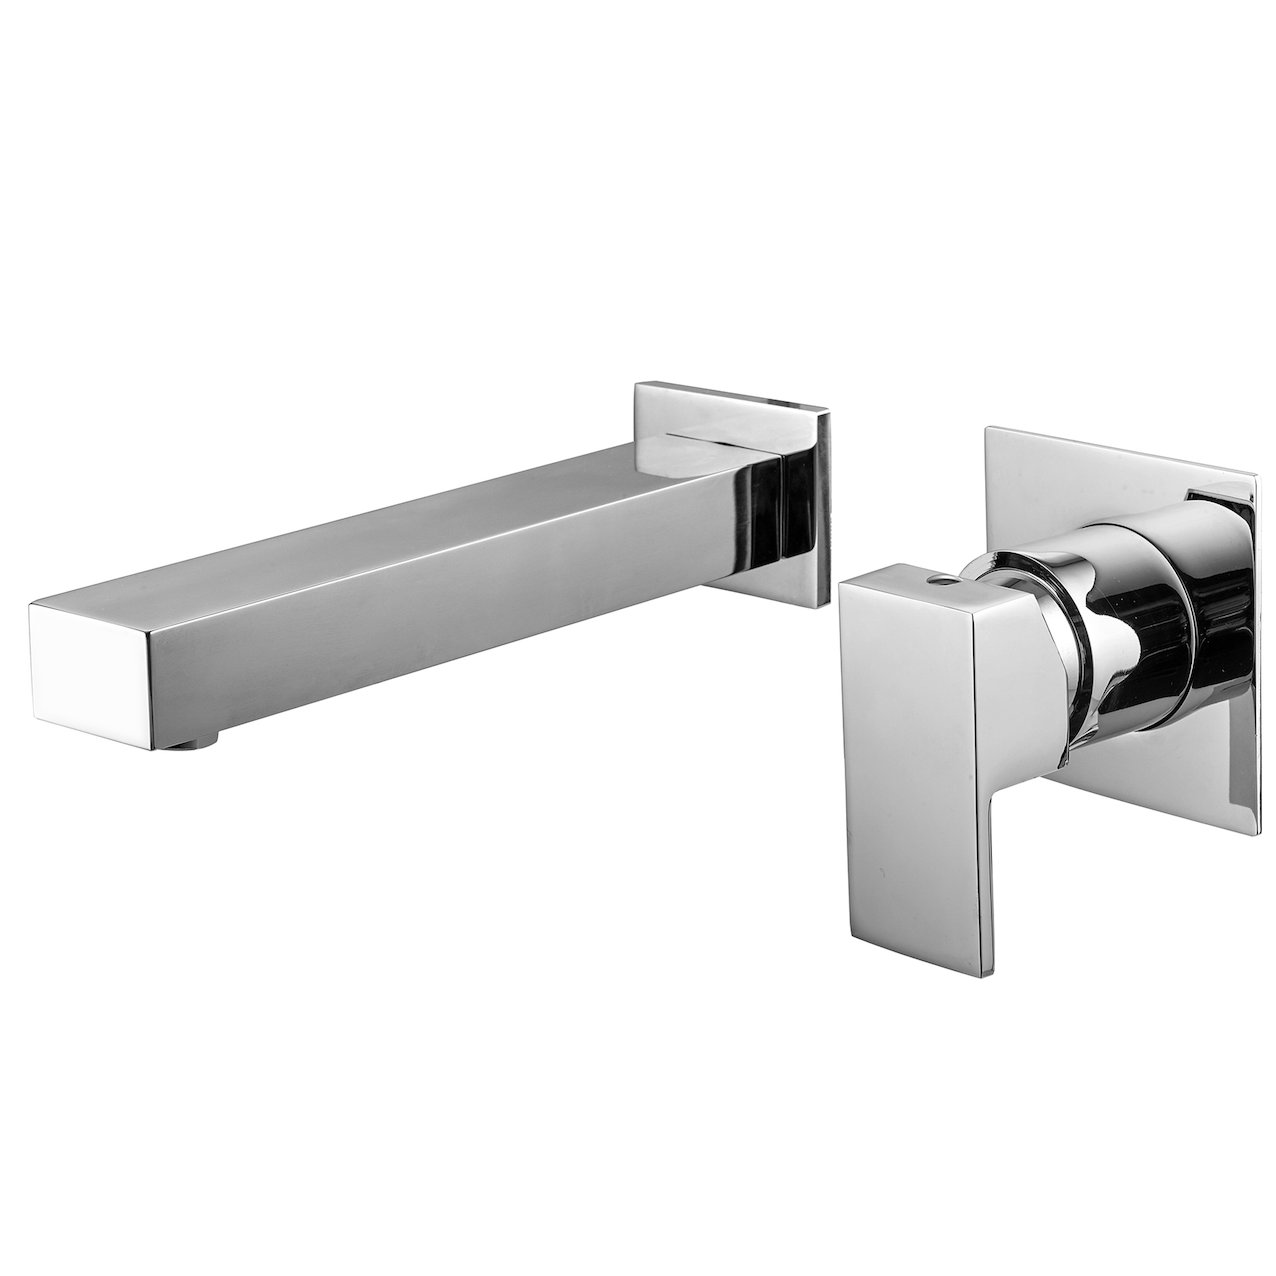 Built-in basin mixer Quadra